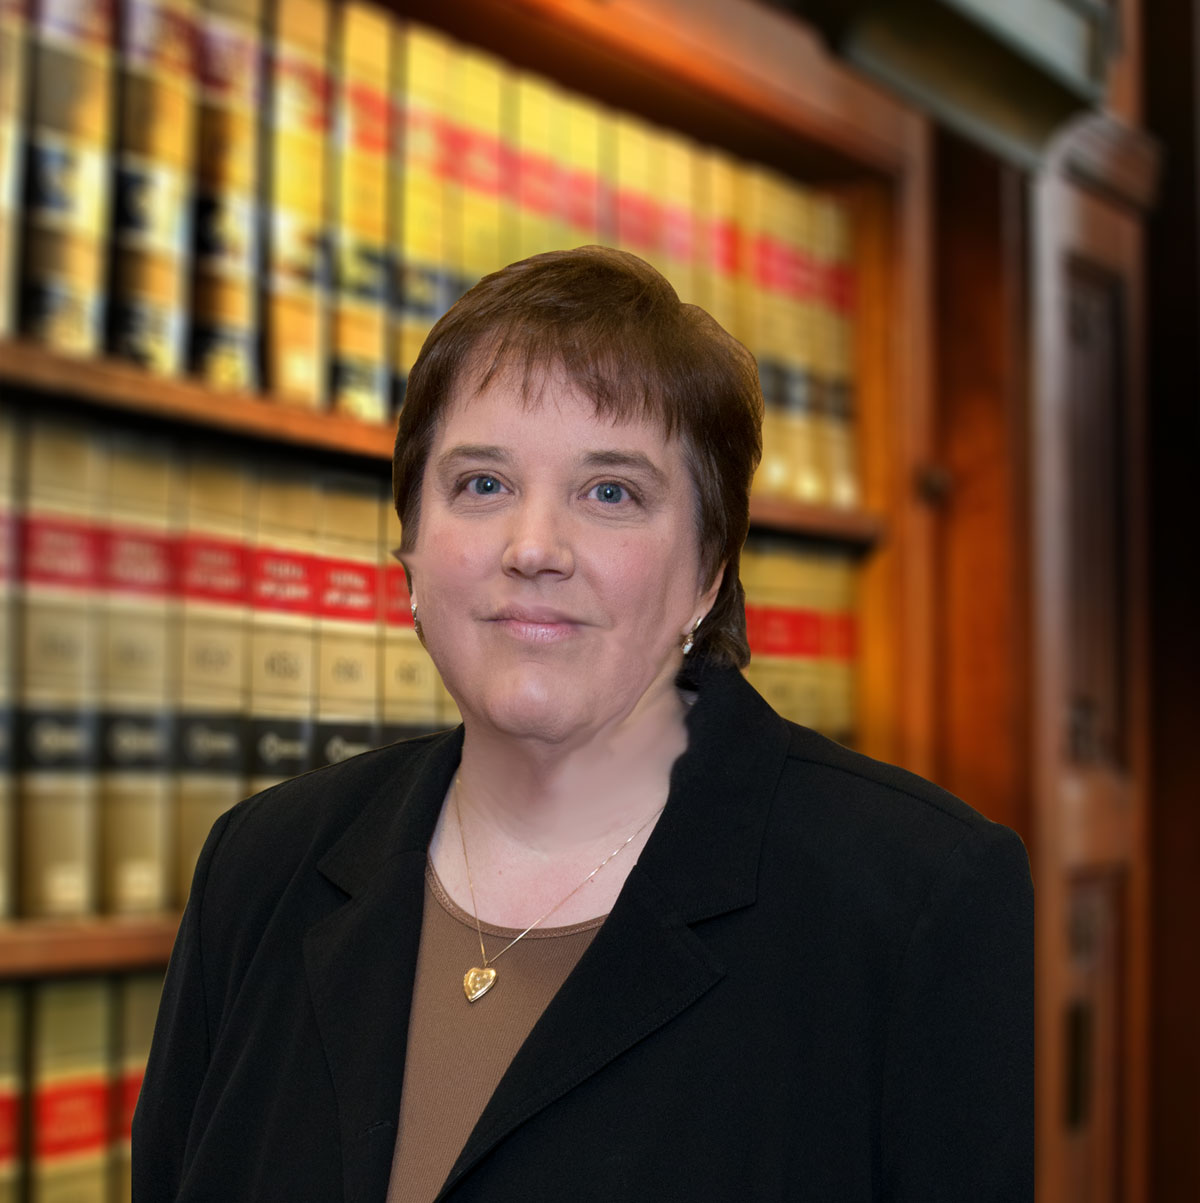 St. Cloud Attorney Gwen Anderson